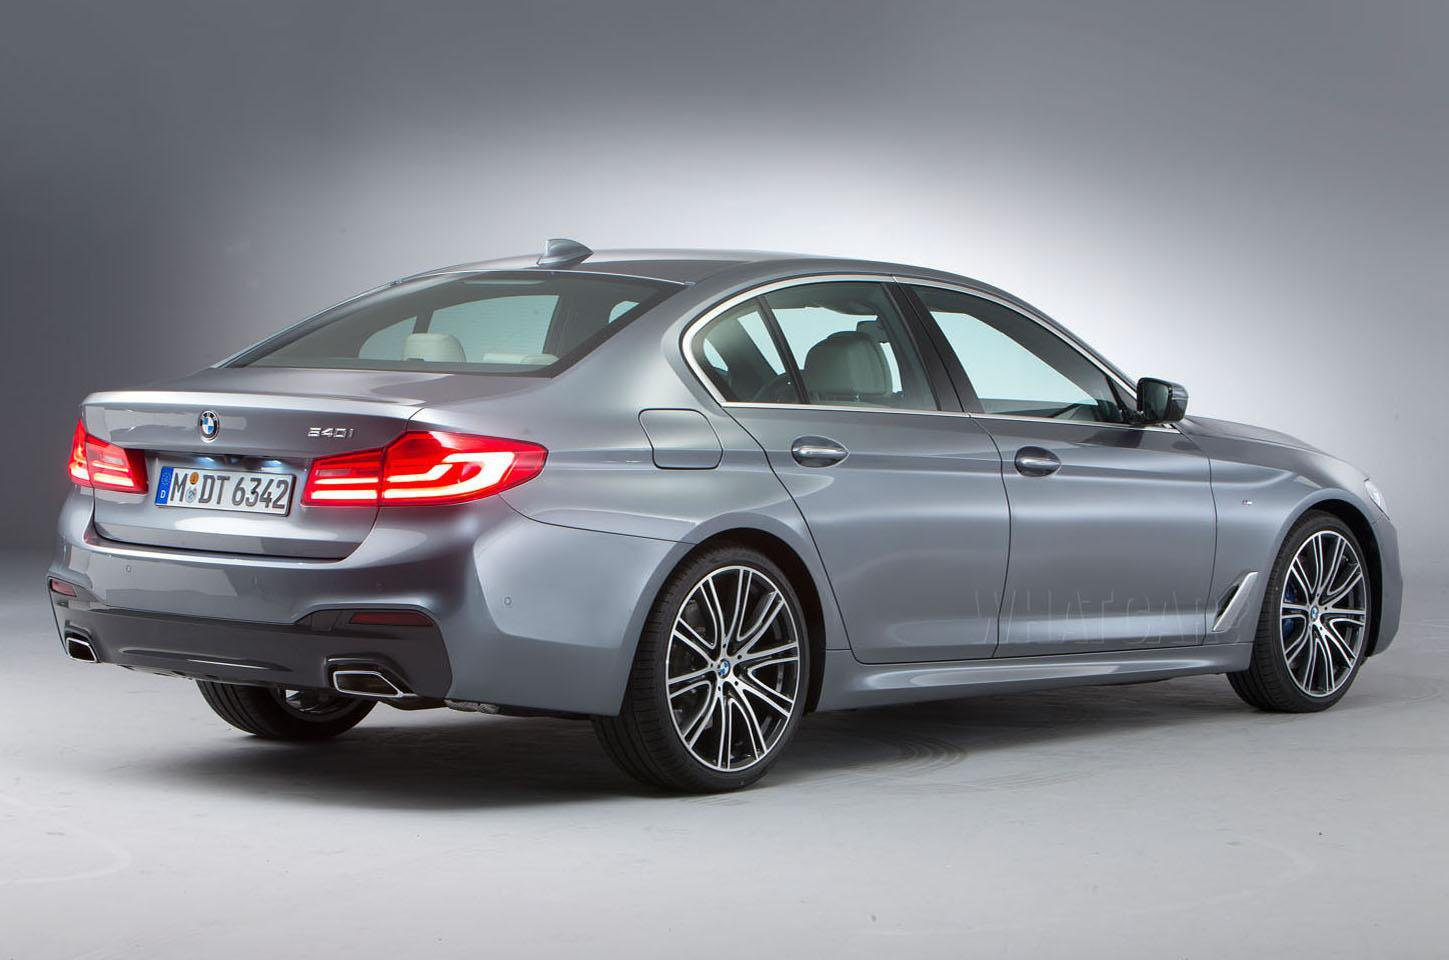 2017 BMW 5 Series to be priced from £36,025